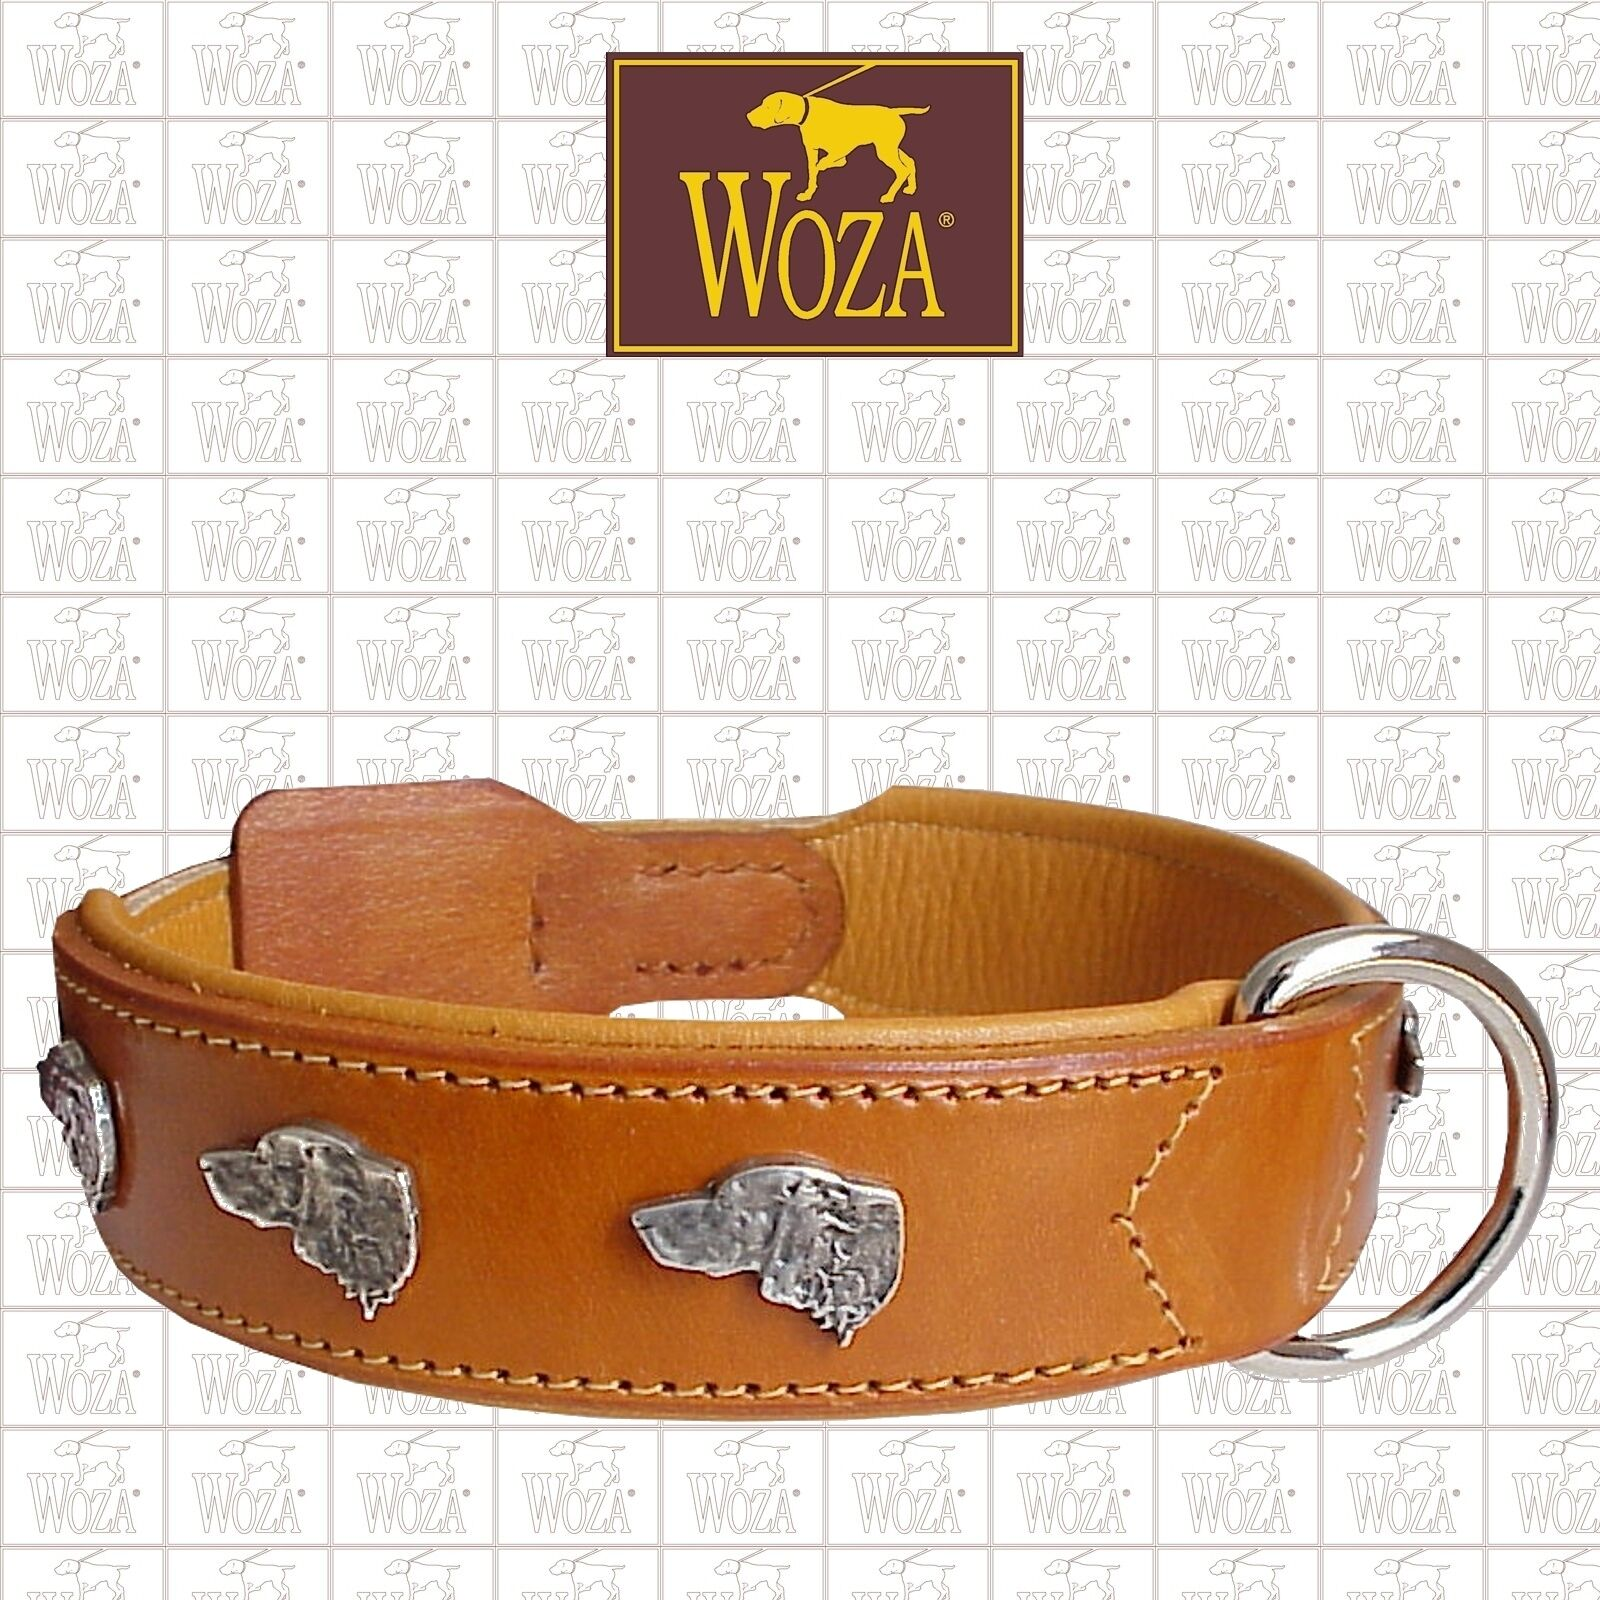 WOZA Premium Dog Collar Setter Full Leather Saddlery-sewn Padded Cow Napa C6299